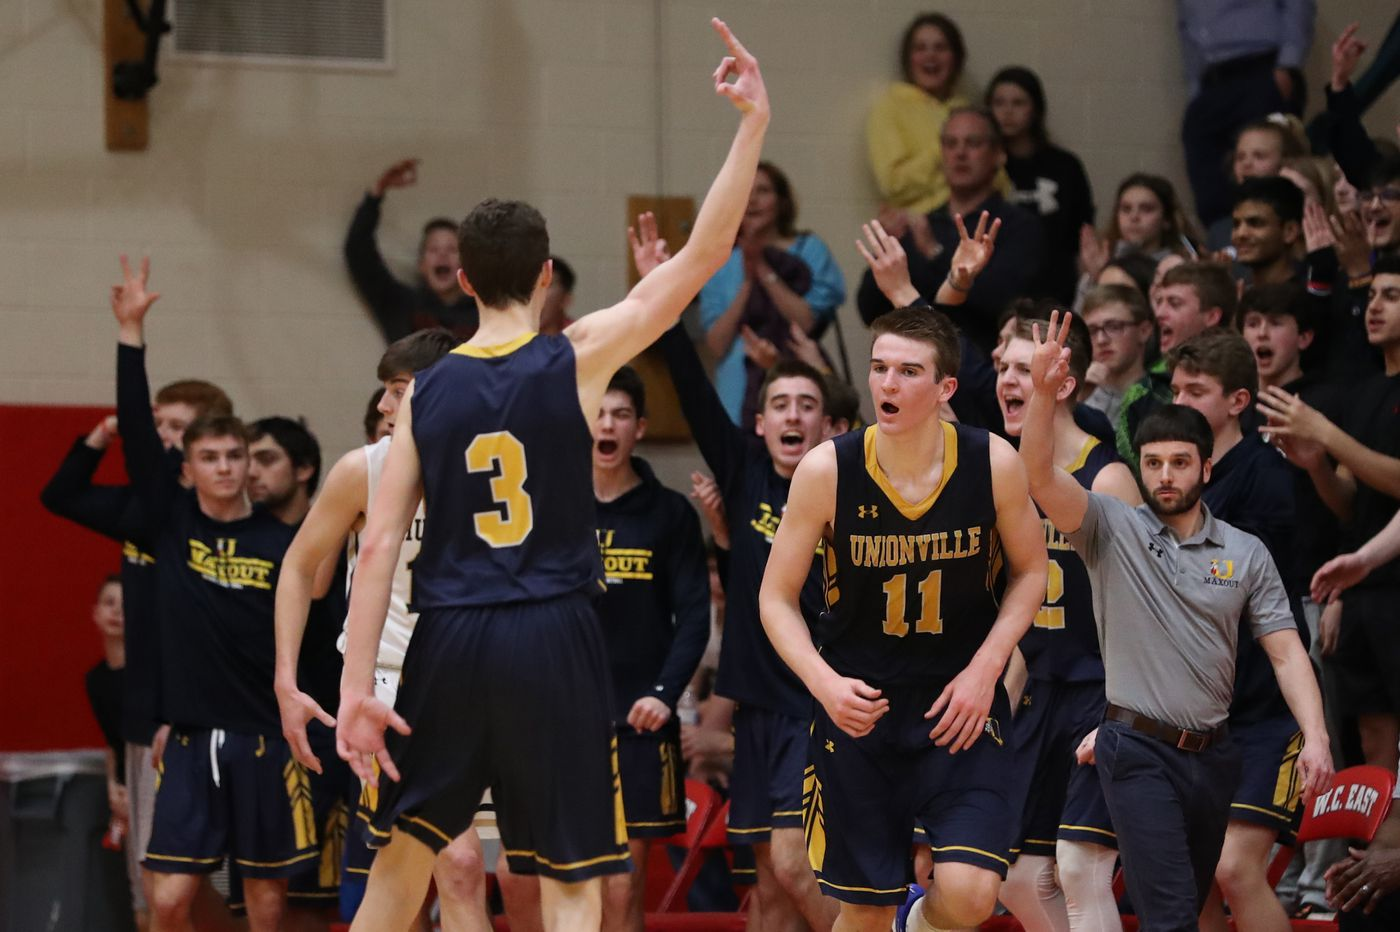 Unionville beats familiar foe West Chester Rustin to advance in PIAA Class 5A playoffs